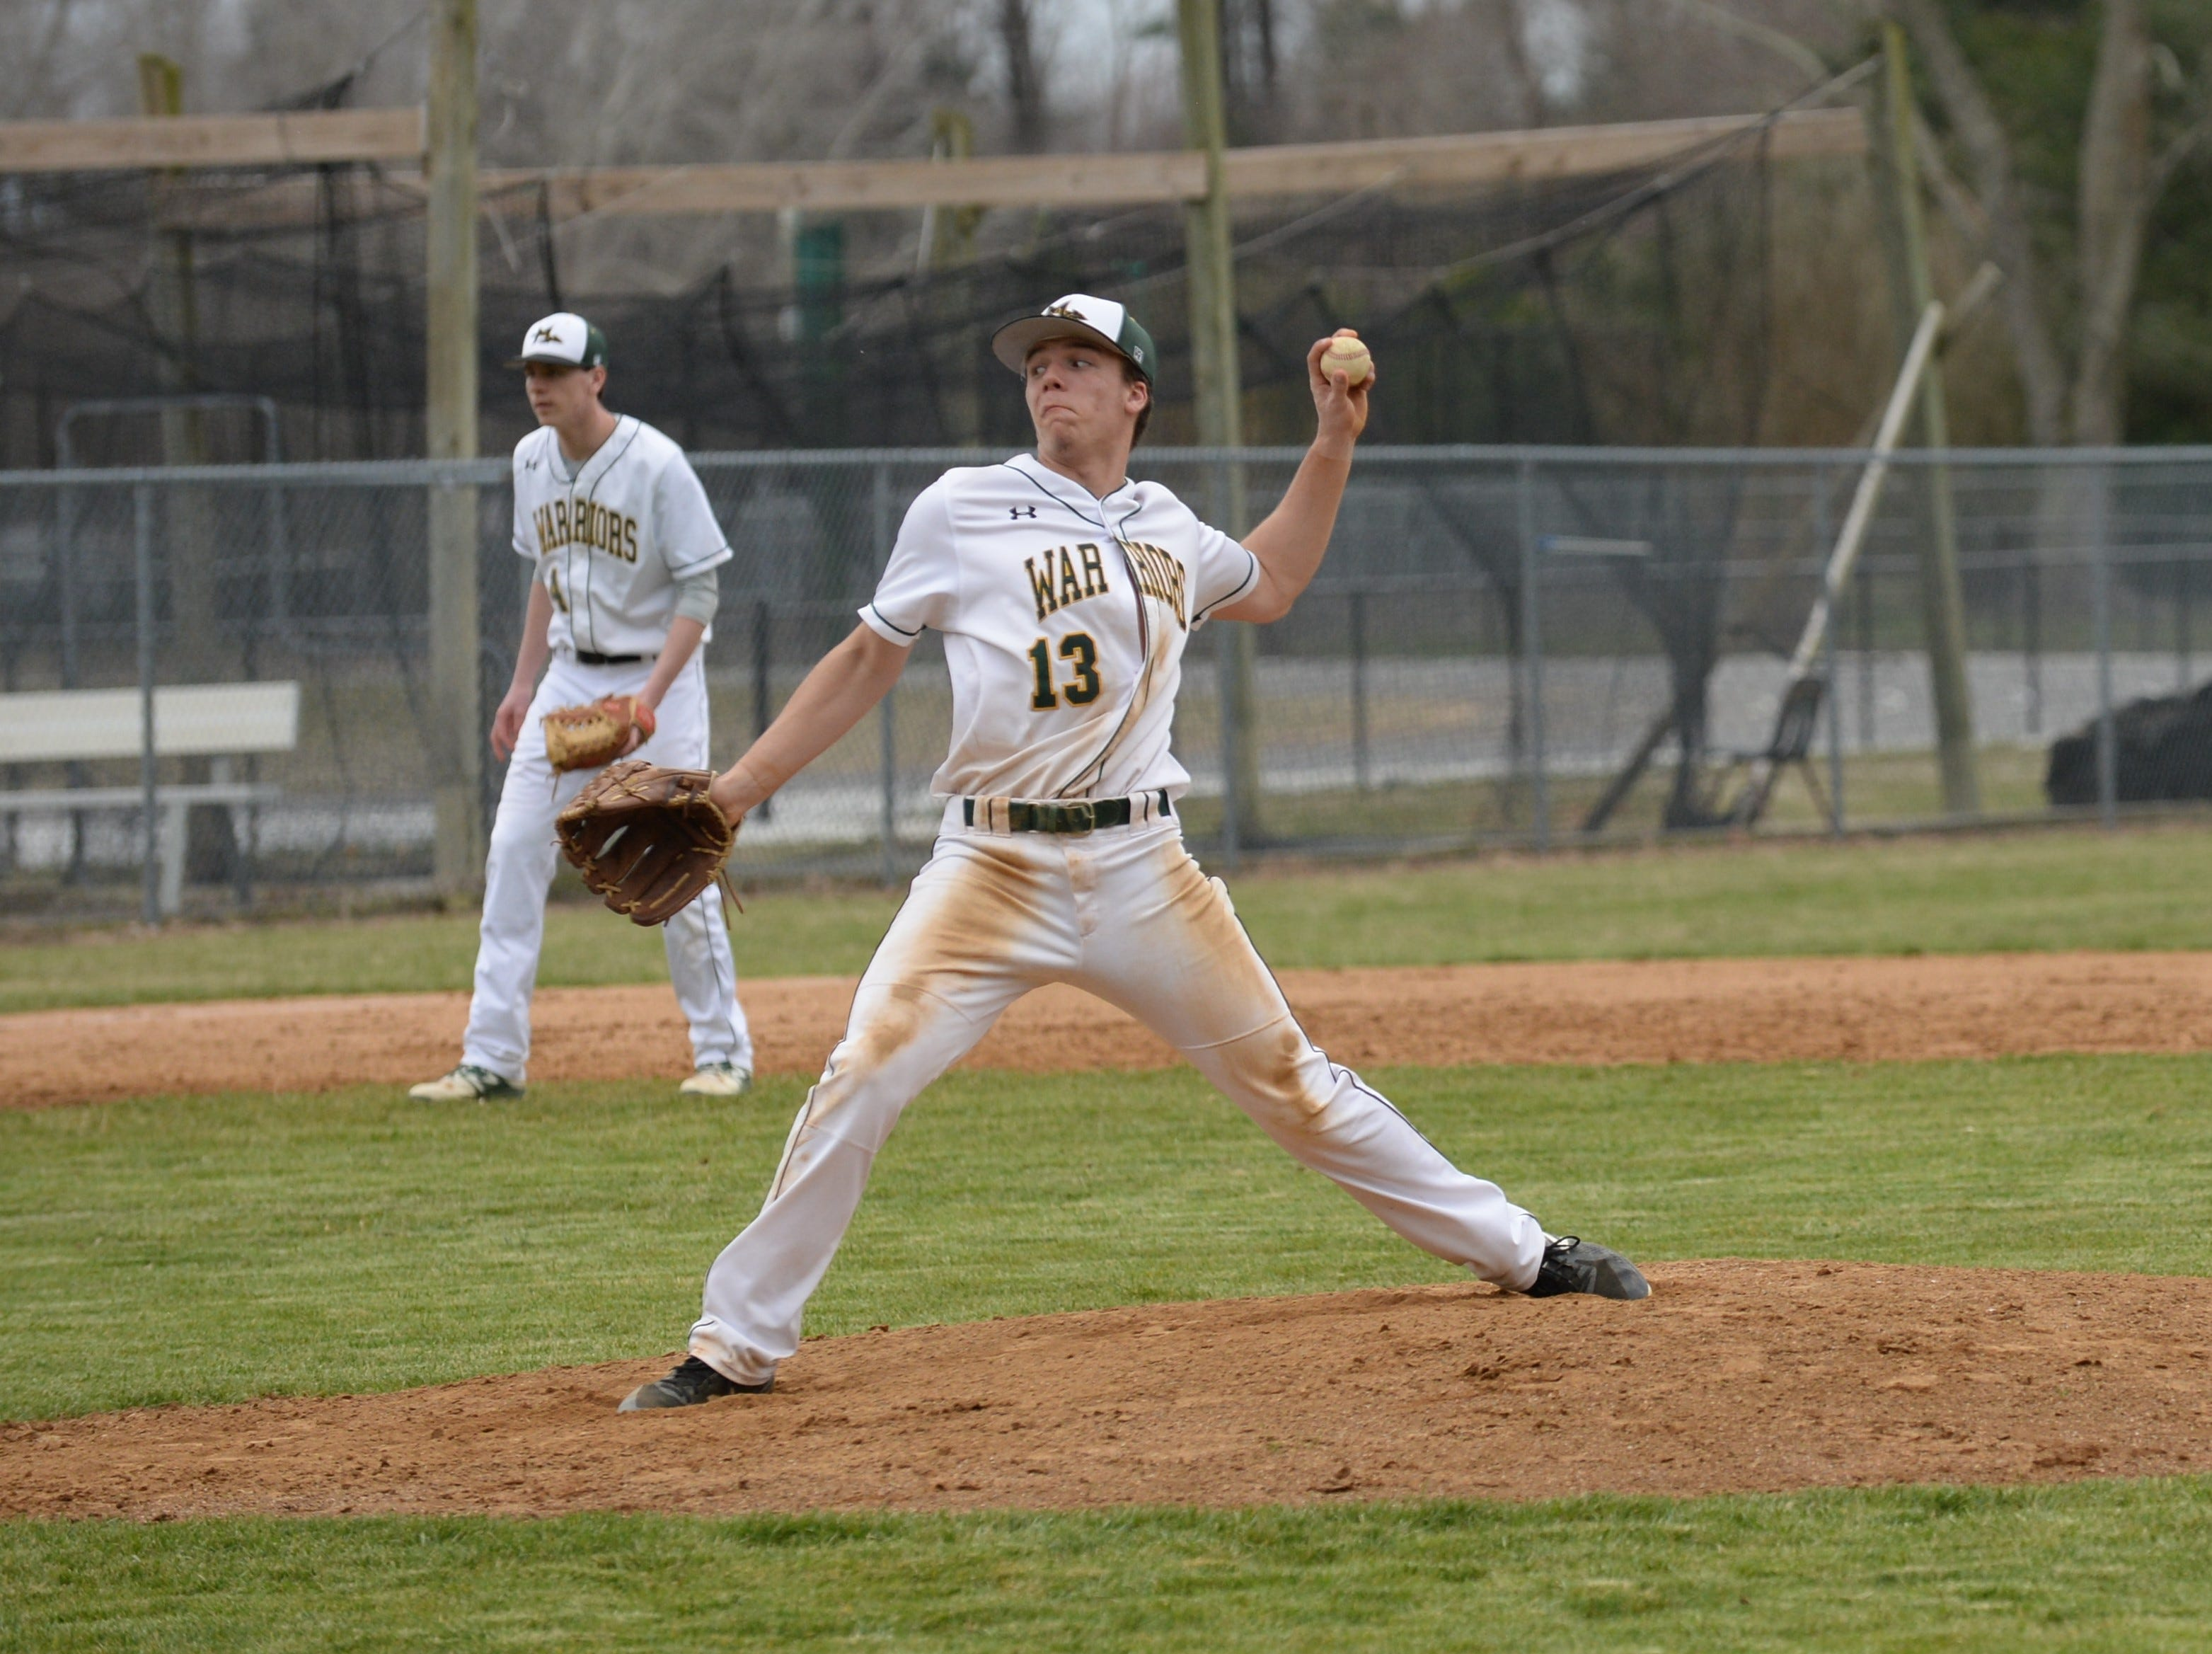 Mardela pitcher Nathan Harper recorded a no-hitter against Pocomoke on Monday, March 25, 2019.